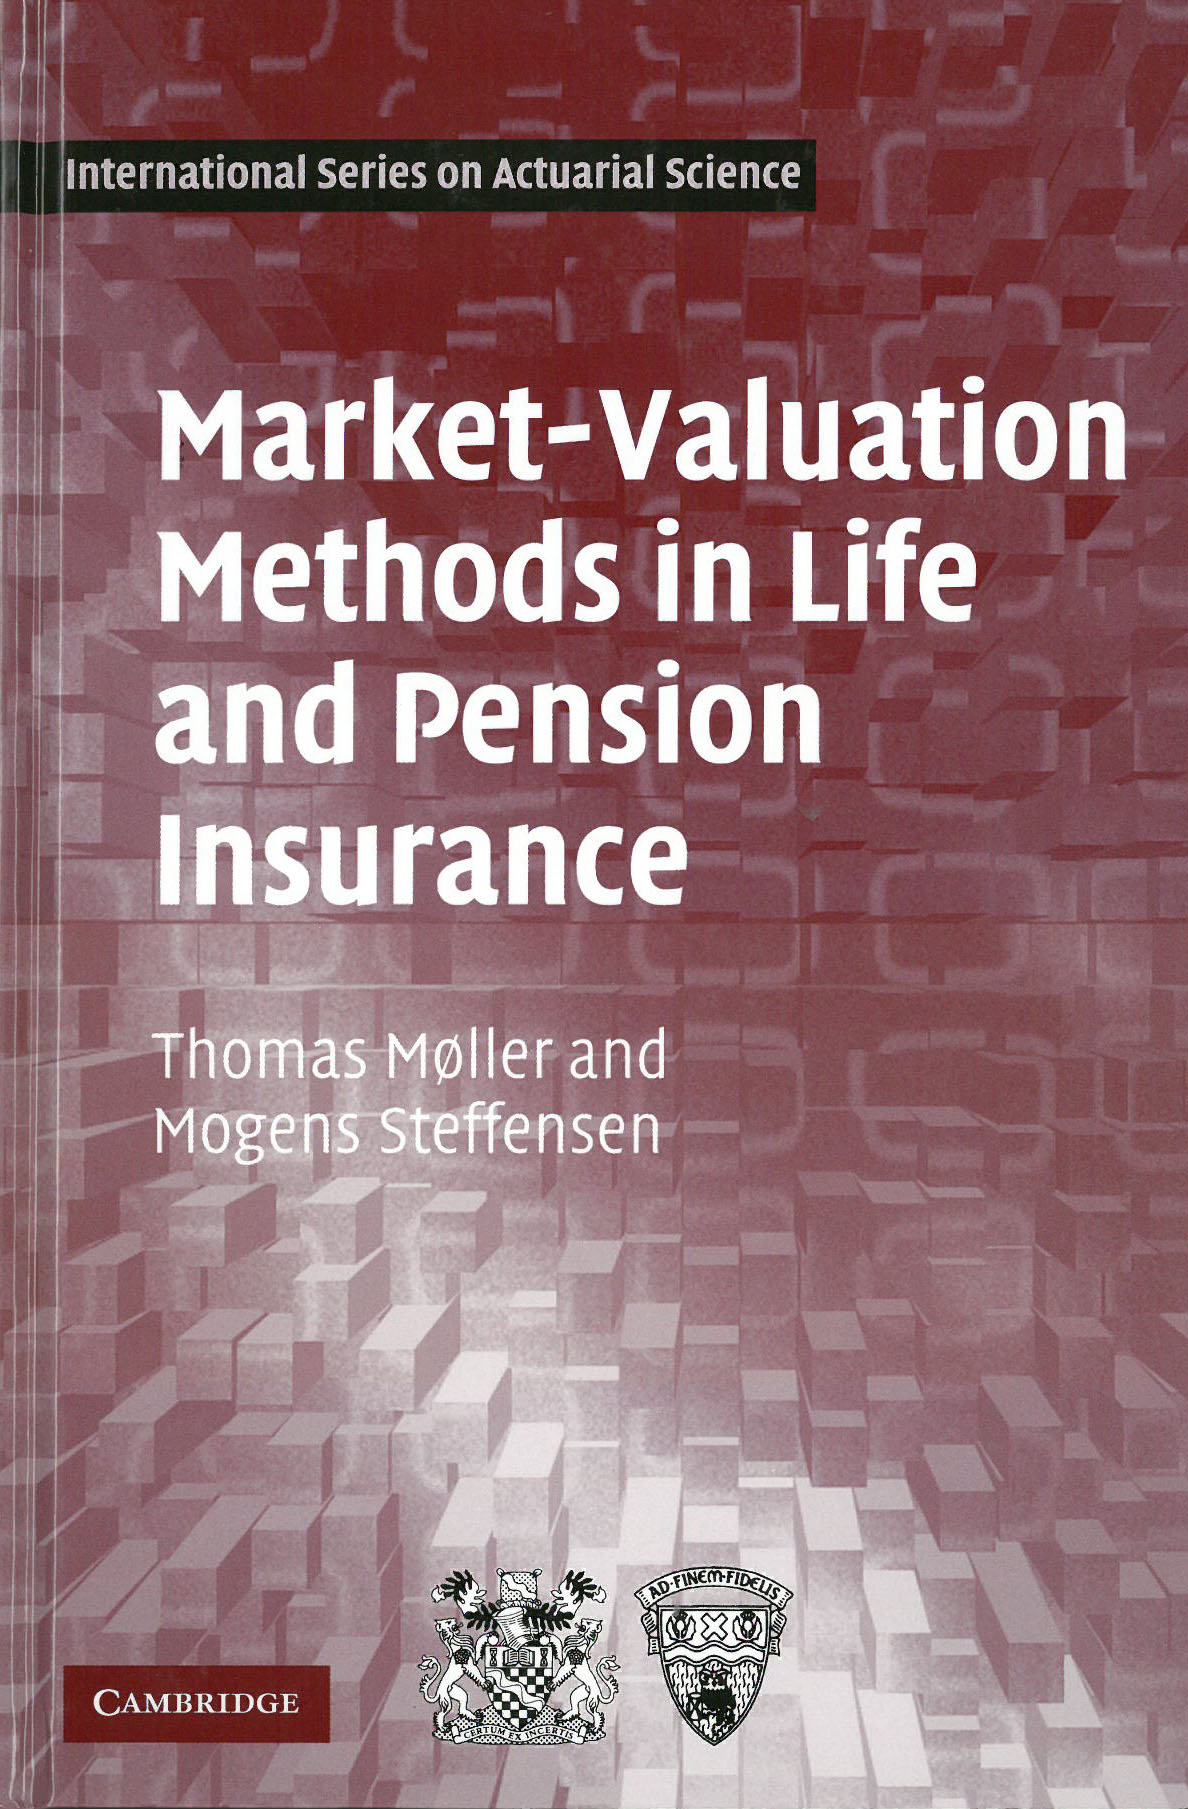 A generic image of Market-valuation methods in life and pension insurance publication